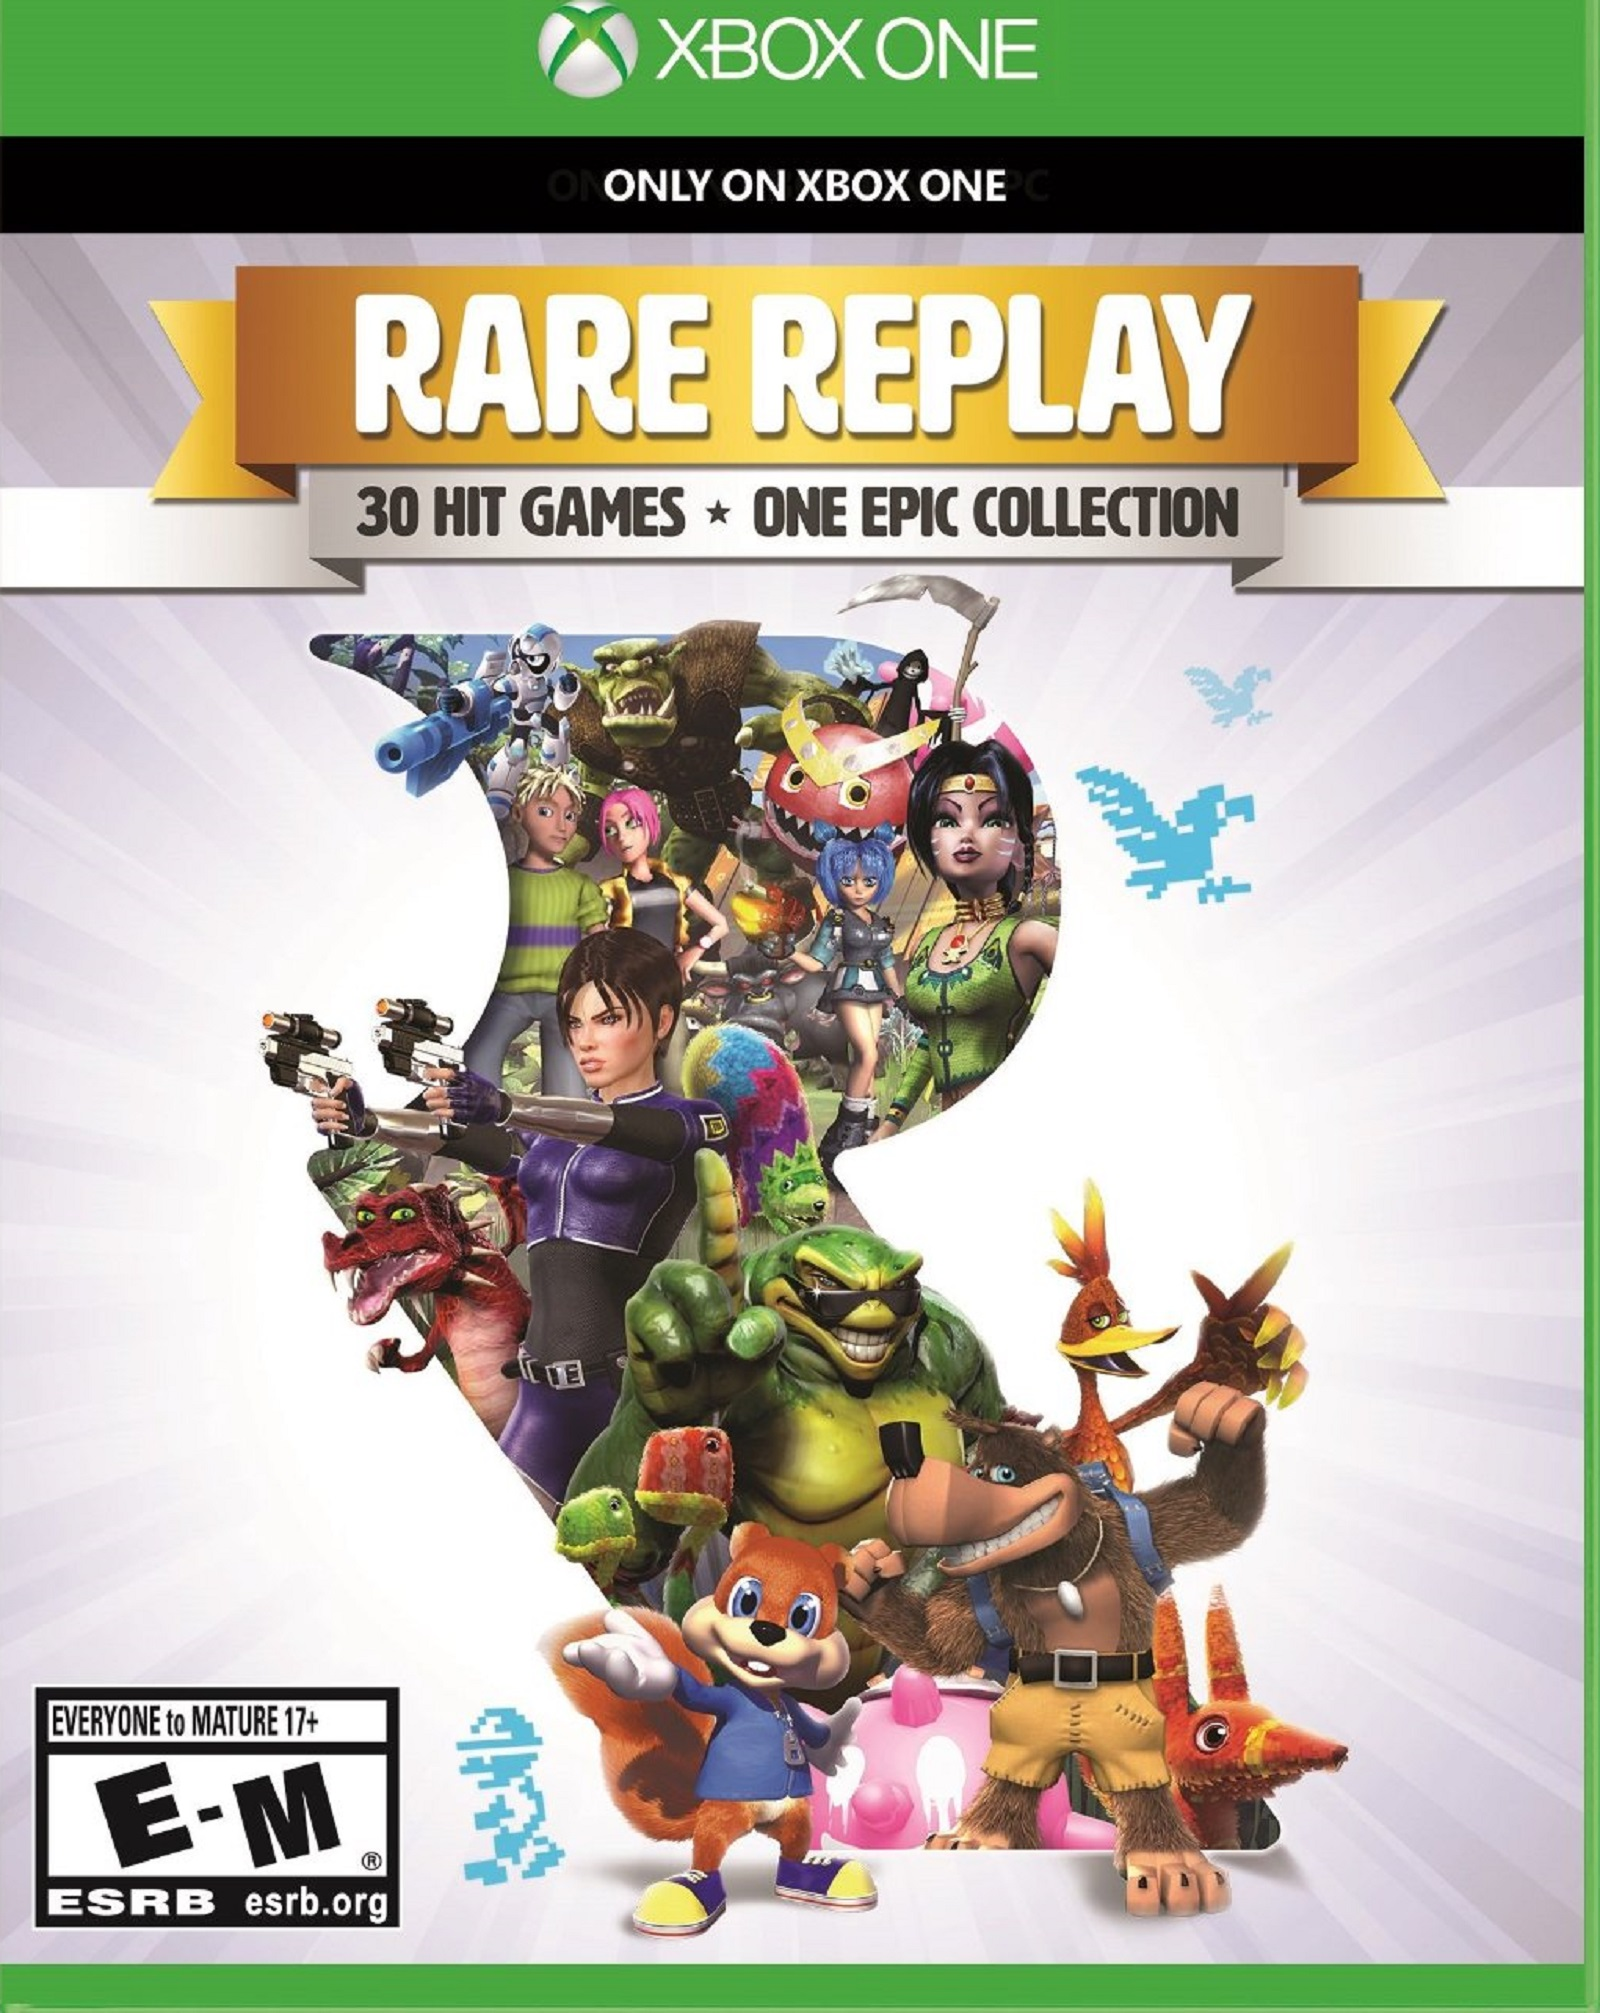 Xbox One Rare Replay USA Box Artwork E for Everyone T for Teen M for Mature